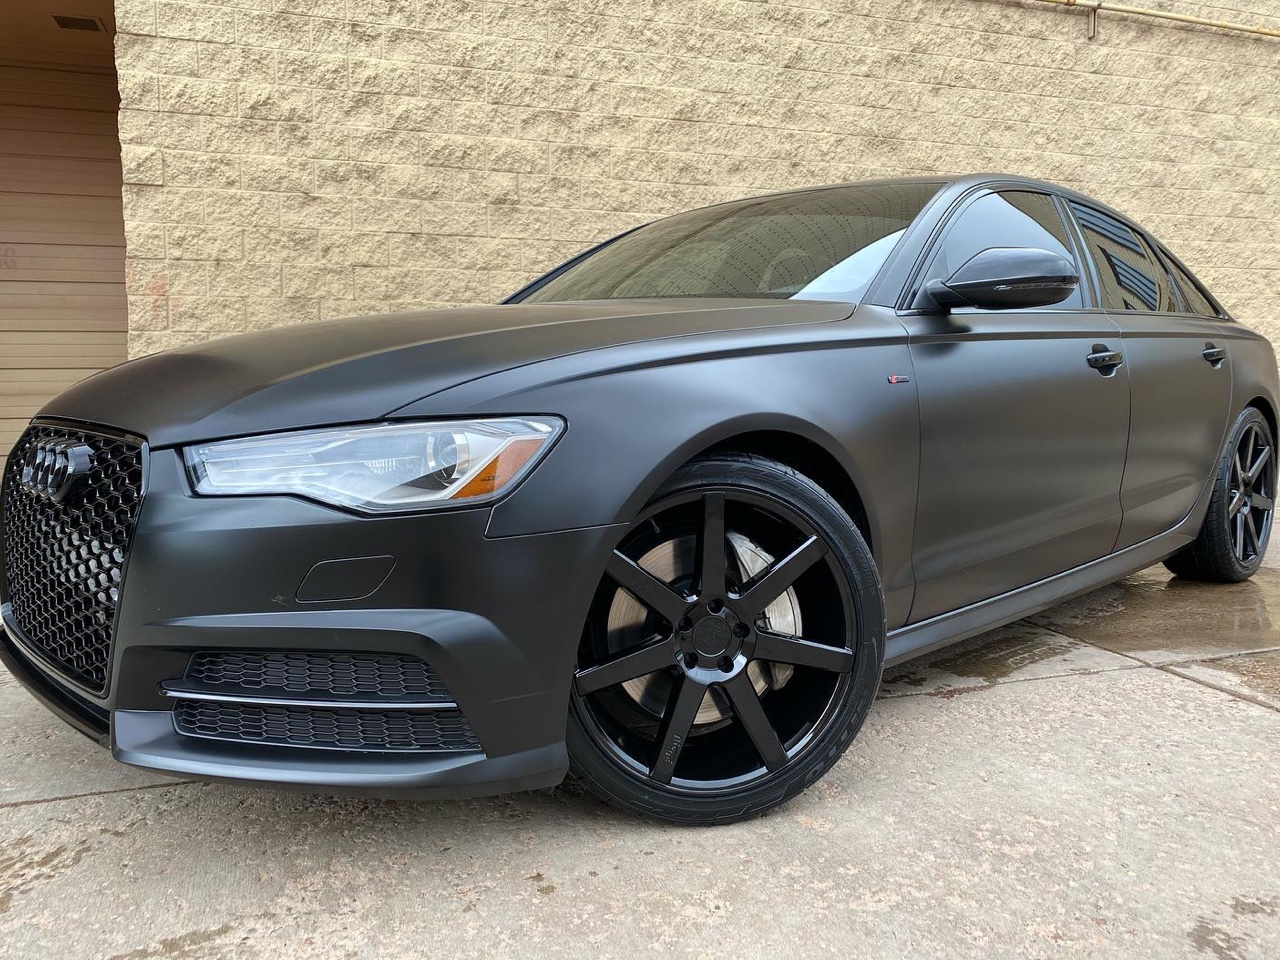 Audi A6 blacked out! Satin black vinyl wrap, gloss black chrome delete, tinted taillights and new custom wheels!